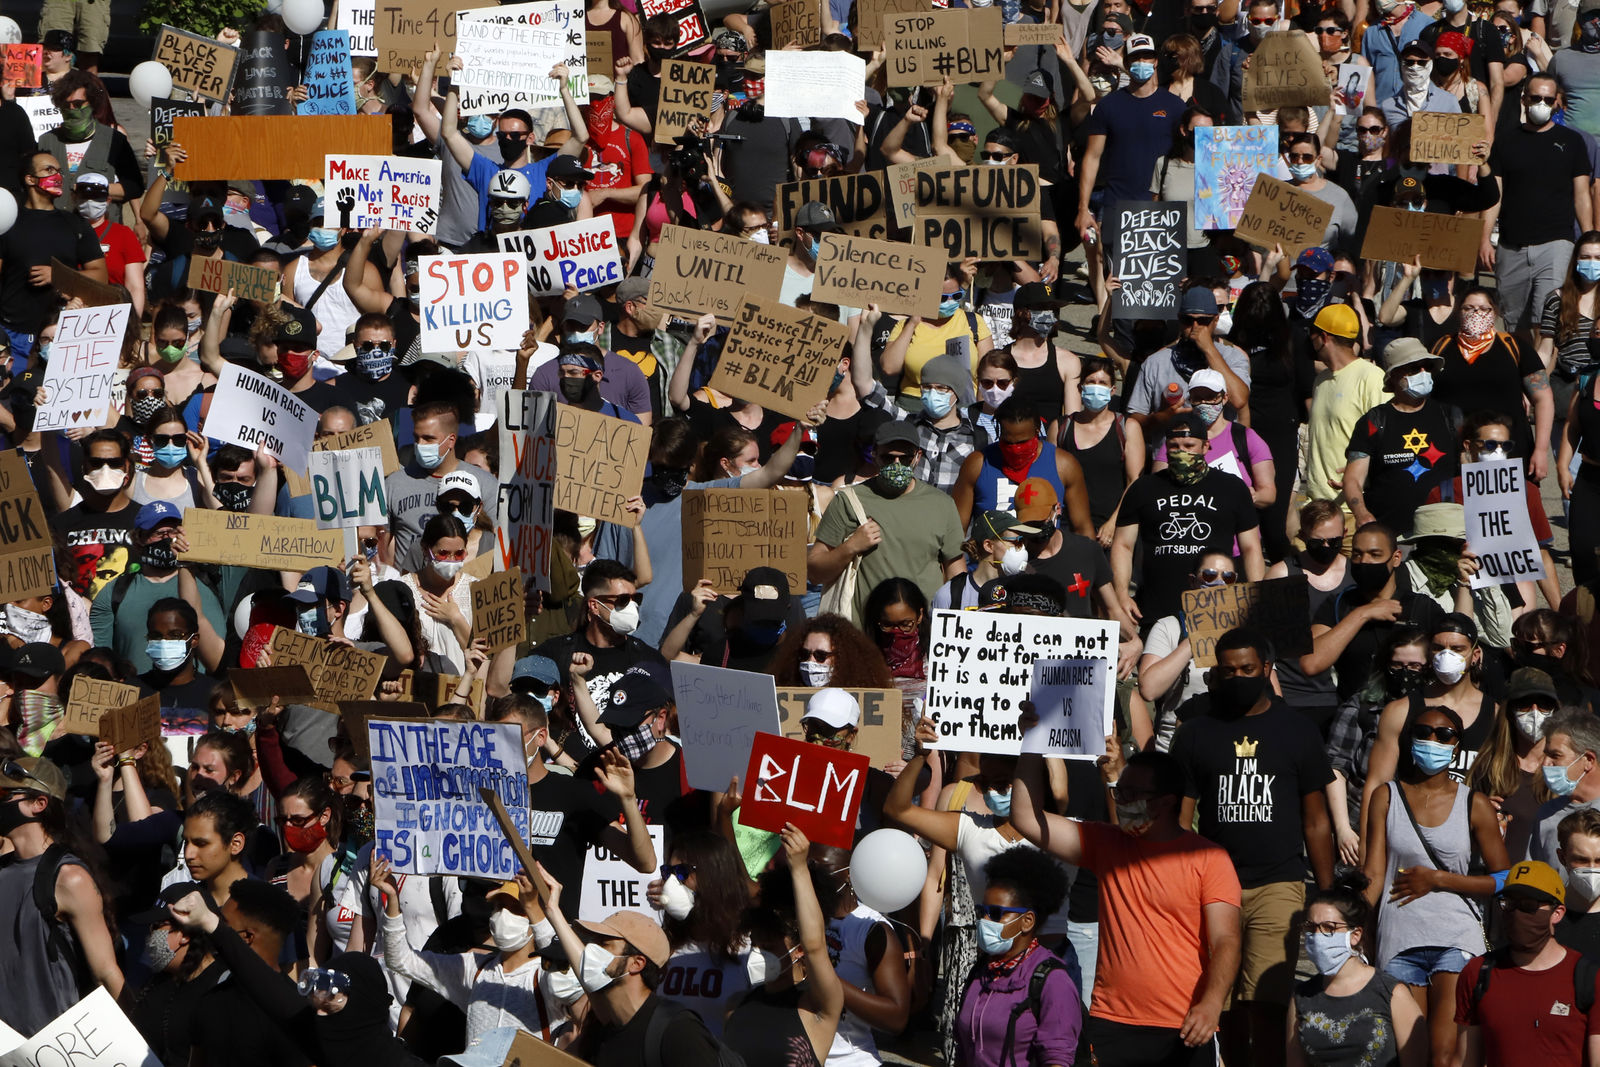 FILE - In this June 7, 2020, file photo, protesters participating in a Black Lives Matter rally march to Downtown Pittsburgh from Mount Washington to protest the death of George Floyd. A national coalition of labor unions, along with racial and social justice organizations, will stage a mass walkout from work July 20, as part of an ongoing reckoning on systemic racism and police brutality in the U.S. (AP Photo/Gene J. Puskar, File)